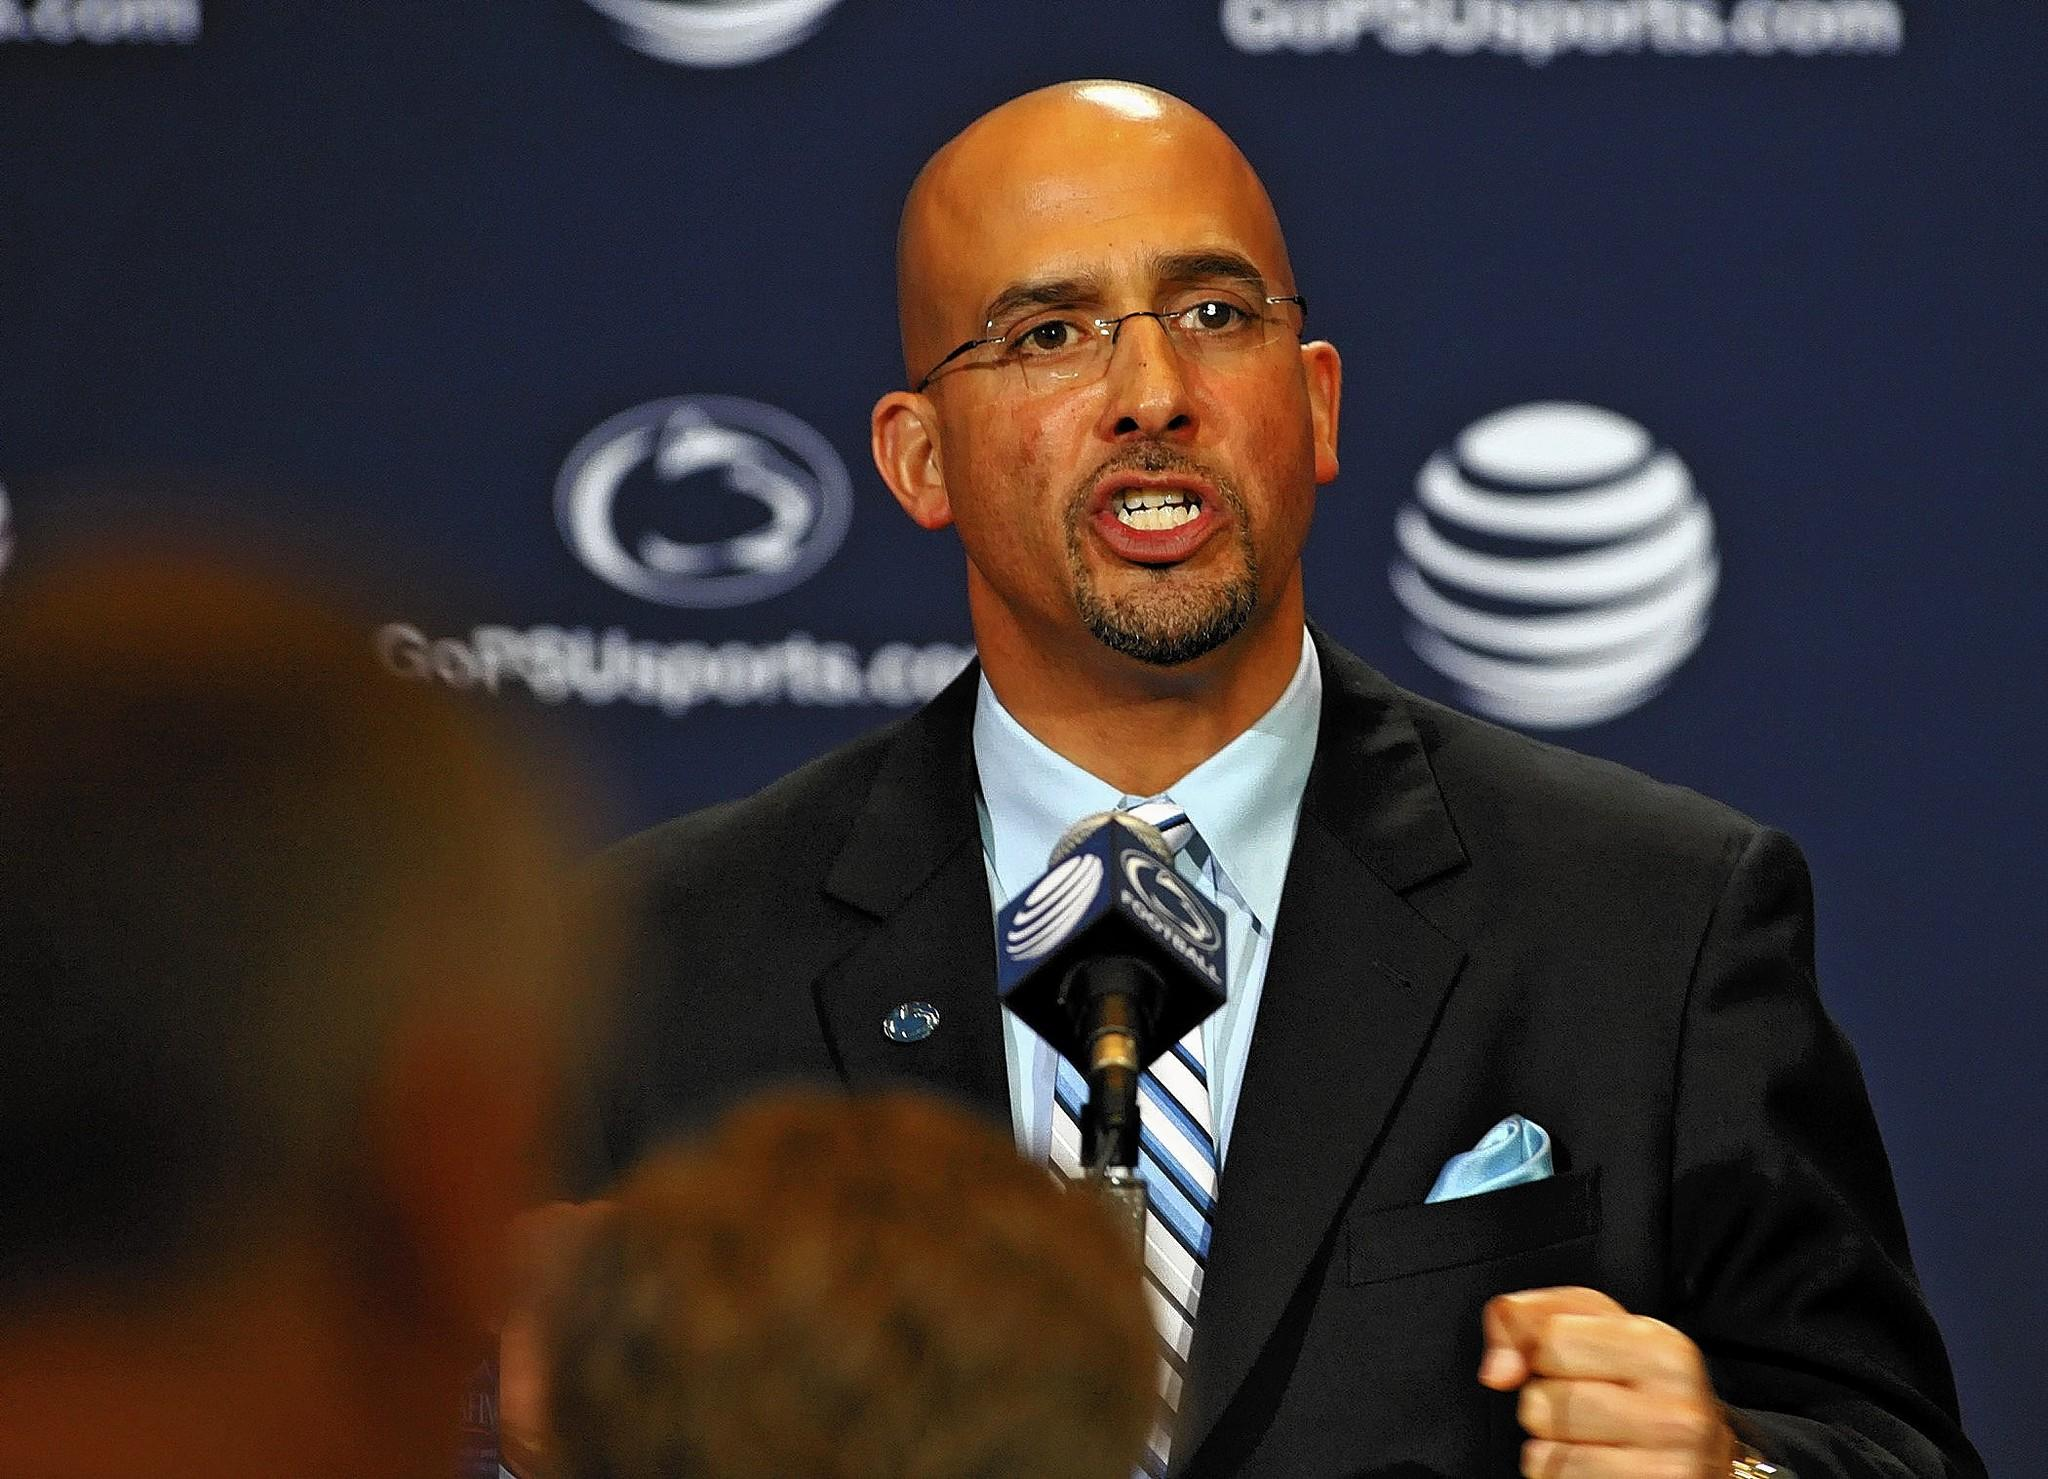 New head football coach James Franklin talks to the media Saturday, January 11, 2014 at Beaver Stadium in State College.